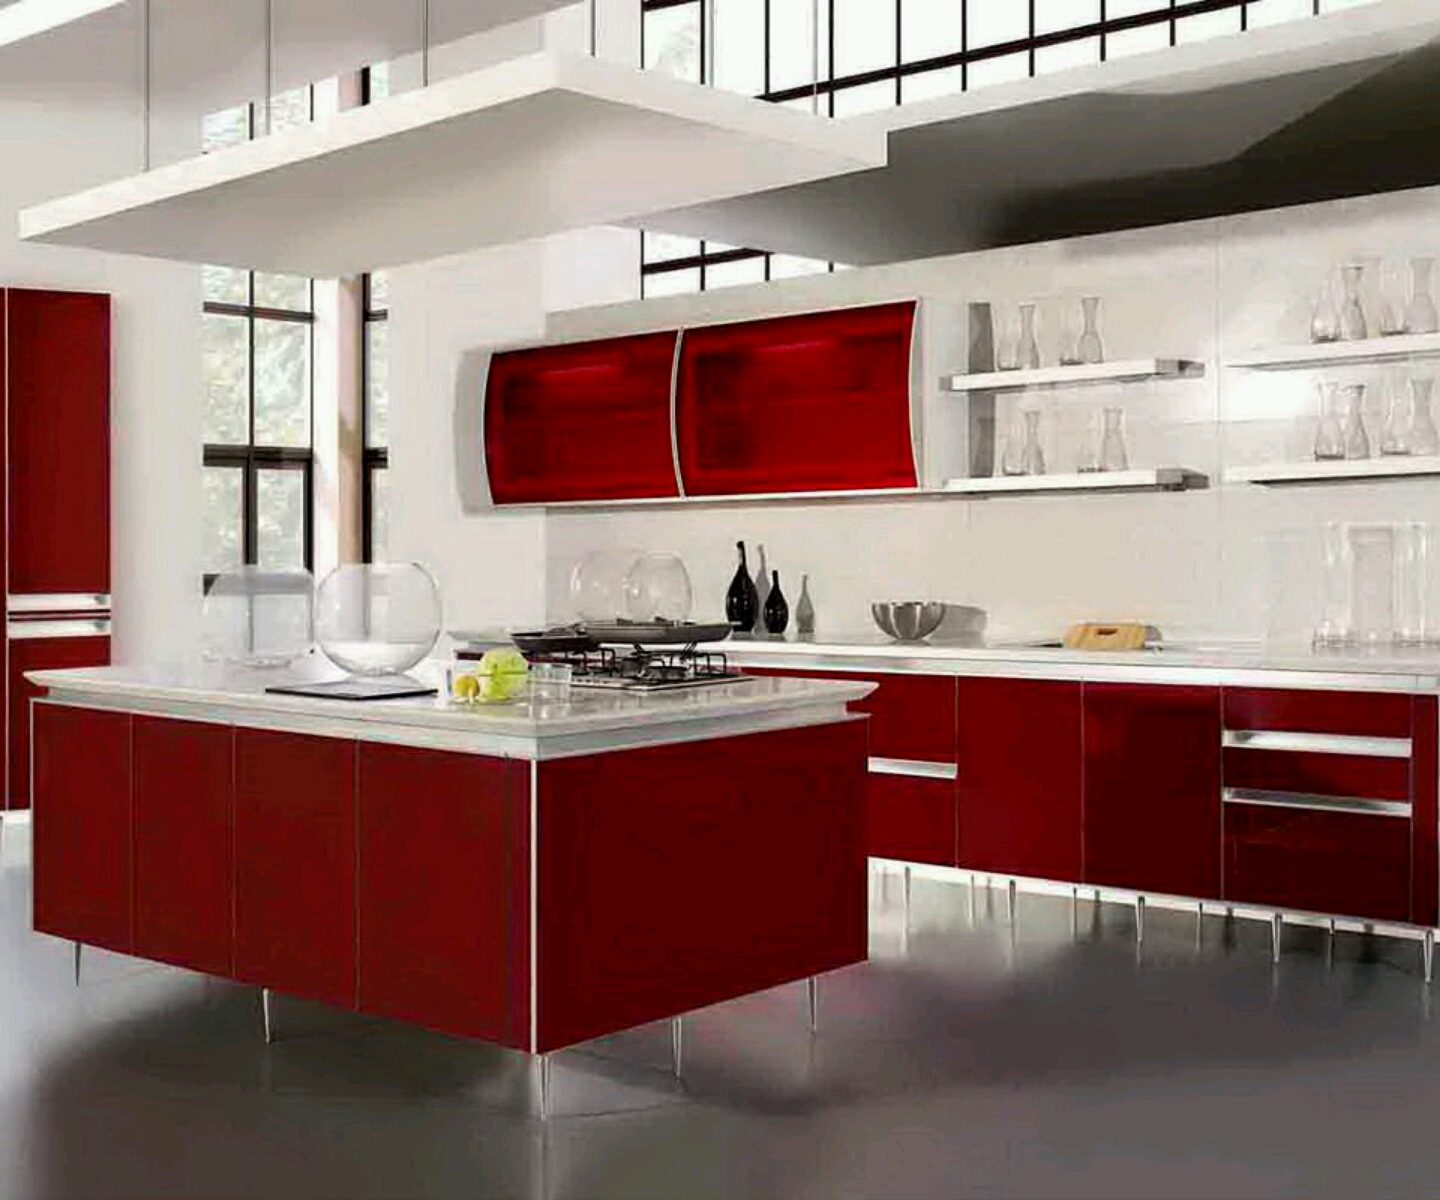 New home designs latest.: Ultra modern kitchen designs ideas. on Modern Kitchen Design  id=31759